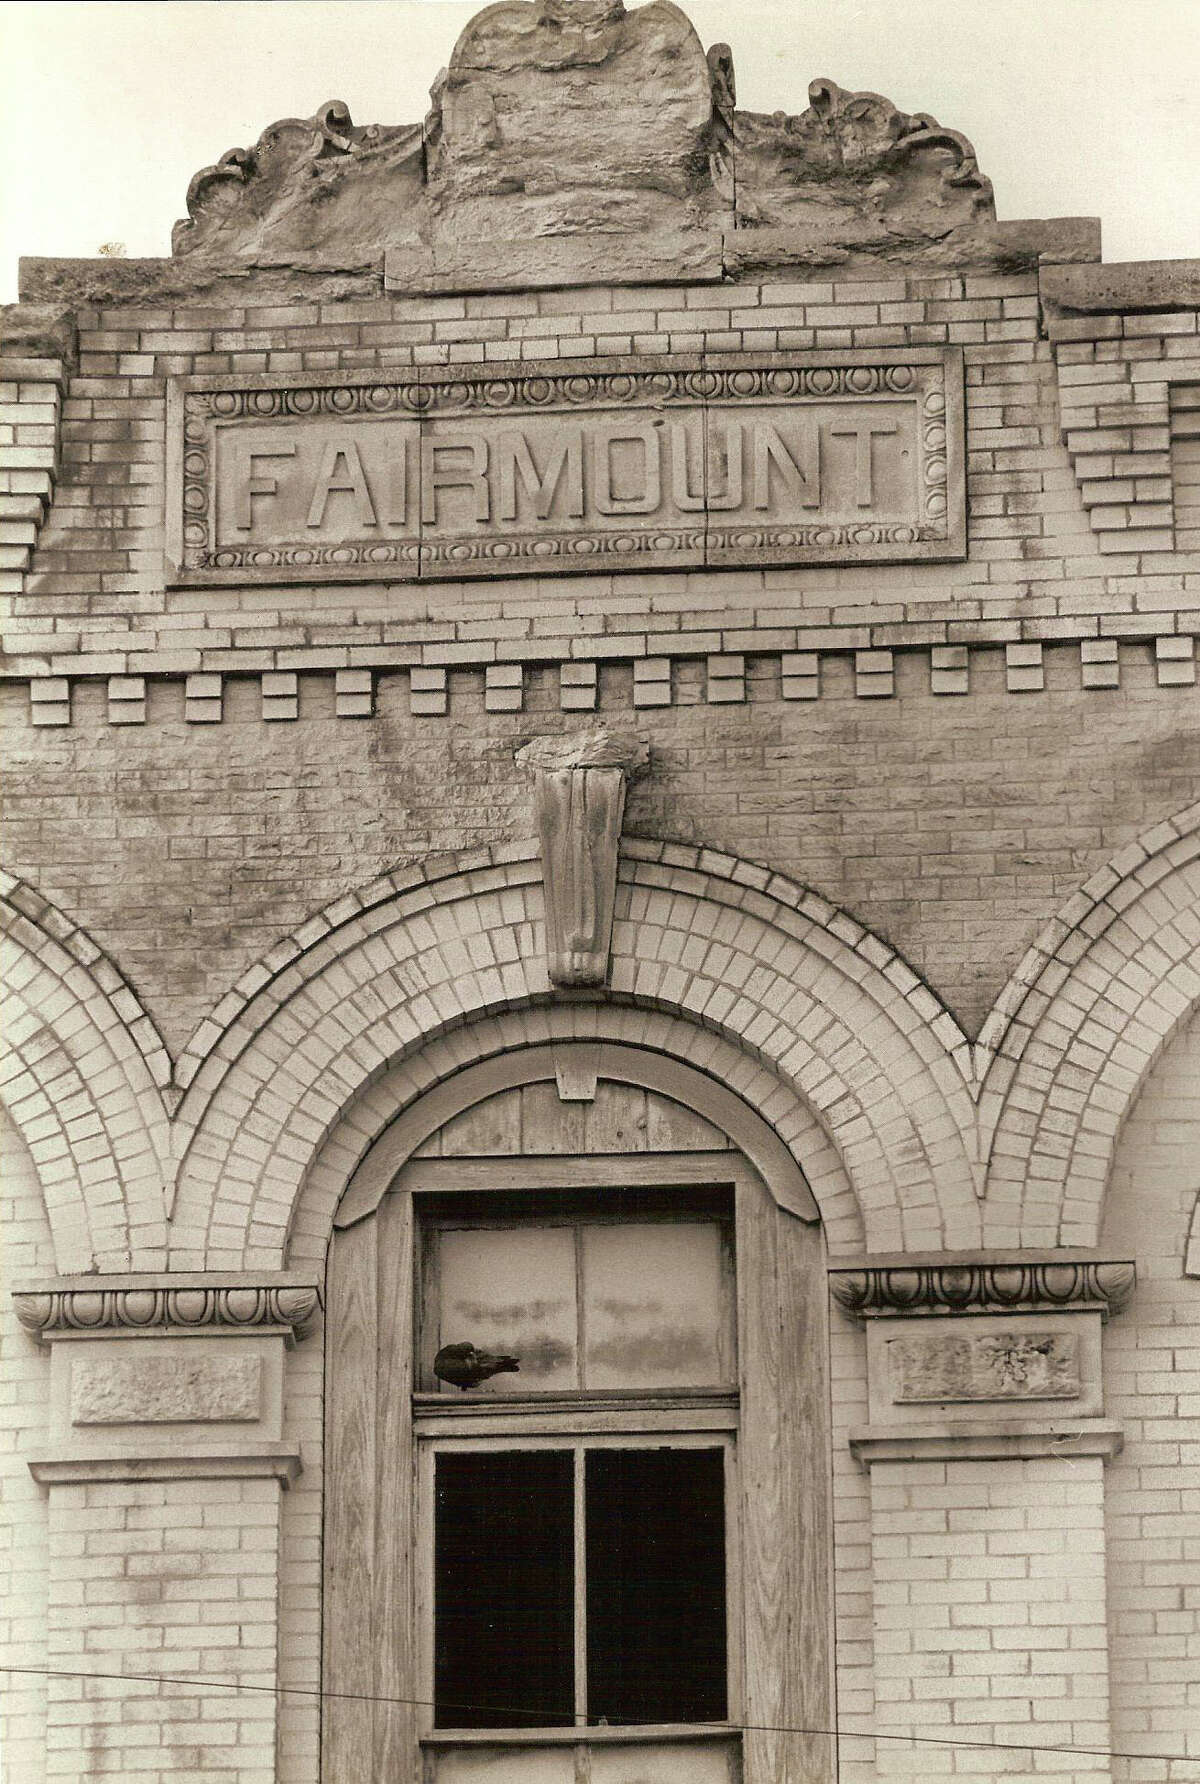 March 21, 1984 - The Fairmont Hotel was built at the intersection of Bowie and Commerce streets in 1906. In 1984, the fate of the hotel was under debate in order to make room for retail and lodging, which later became the Marriott Rivercenter Hotel